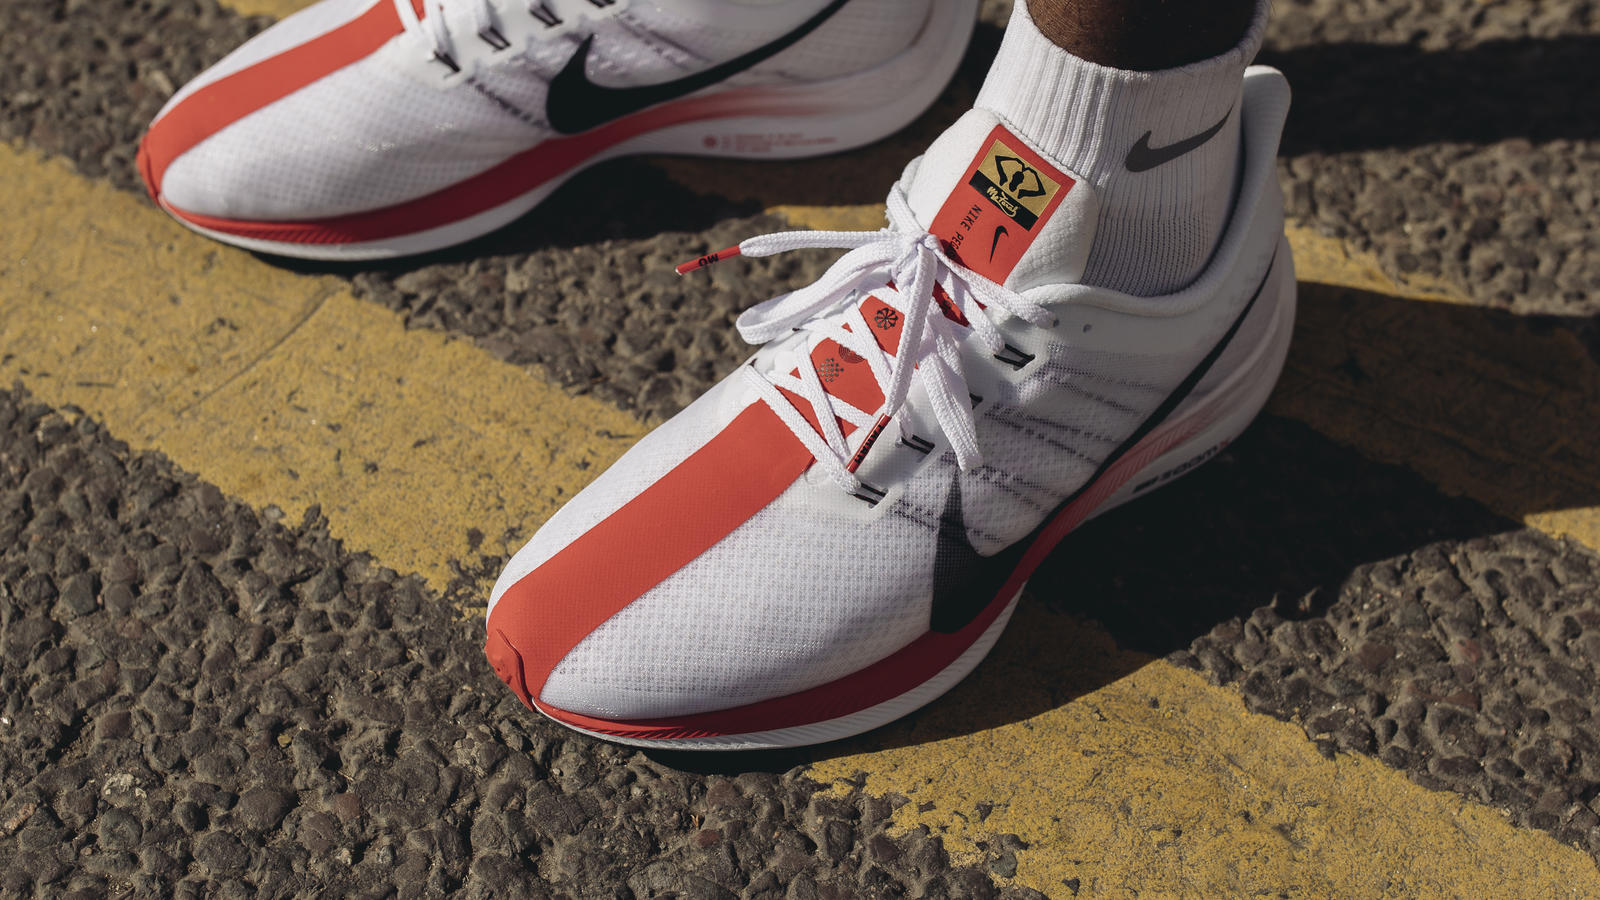 a96f25dac46 The Mo Farah edition of the Nike Zoom Pegasus 35 Turbo will soon release in  a London themed colorway. The performance runner is set in white with a  clay ...